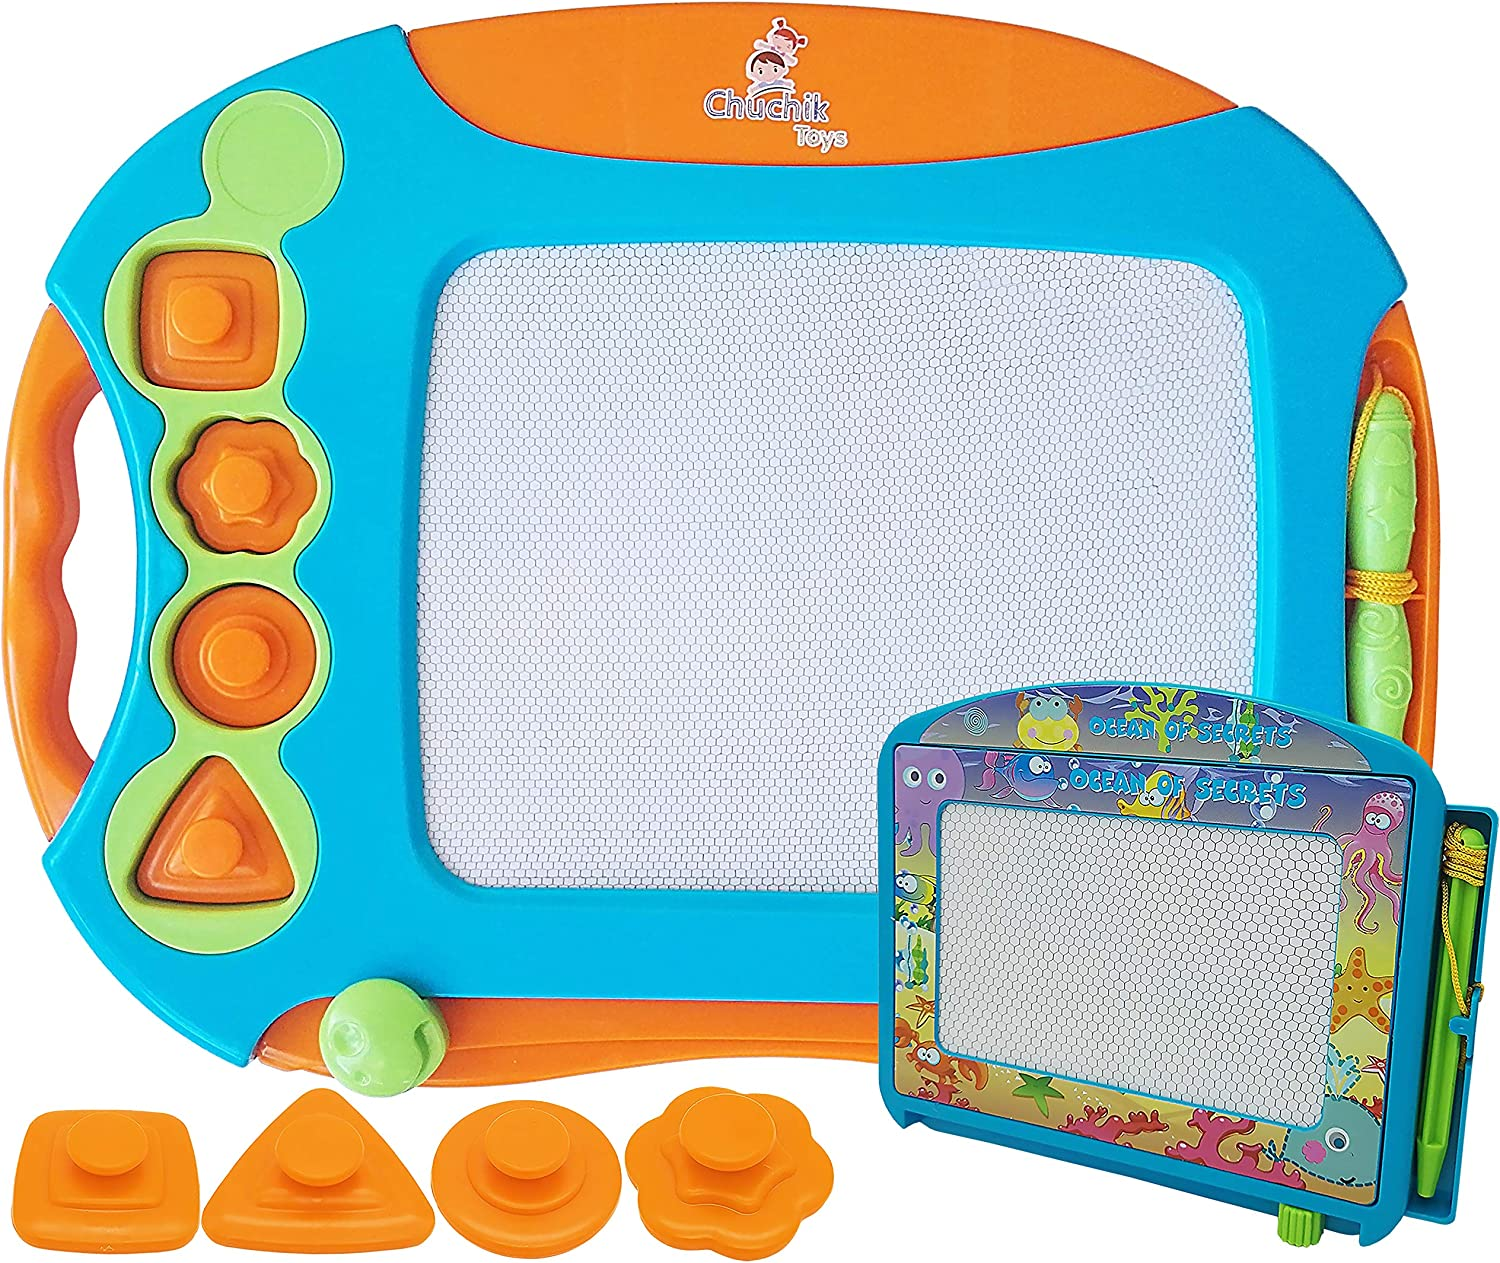 CHUCHIK Toys Magnetic Drawing Board Set for Kids and Toddlers. Large 15.7 Inch Magna Doodle Writing Pad Comes with a 4-Color Travel Size Sketch Doodle Board